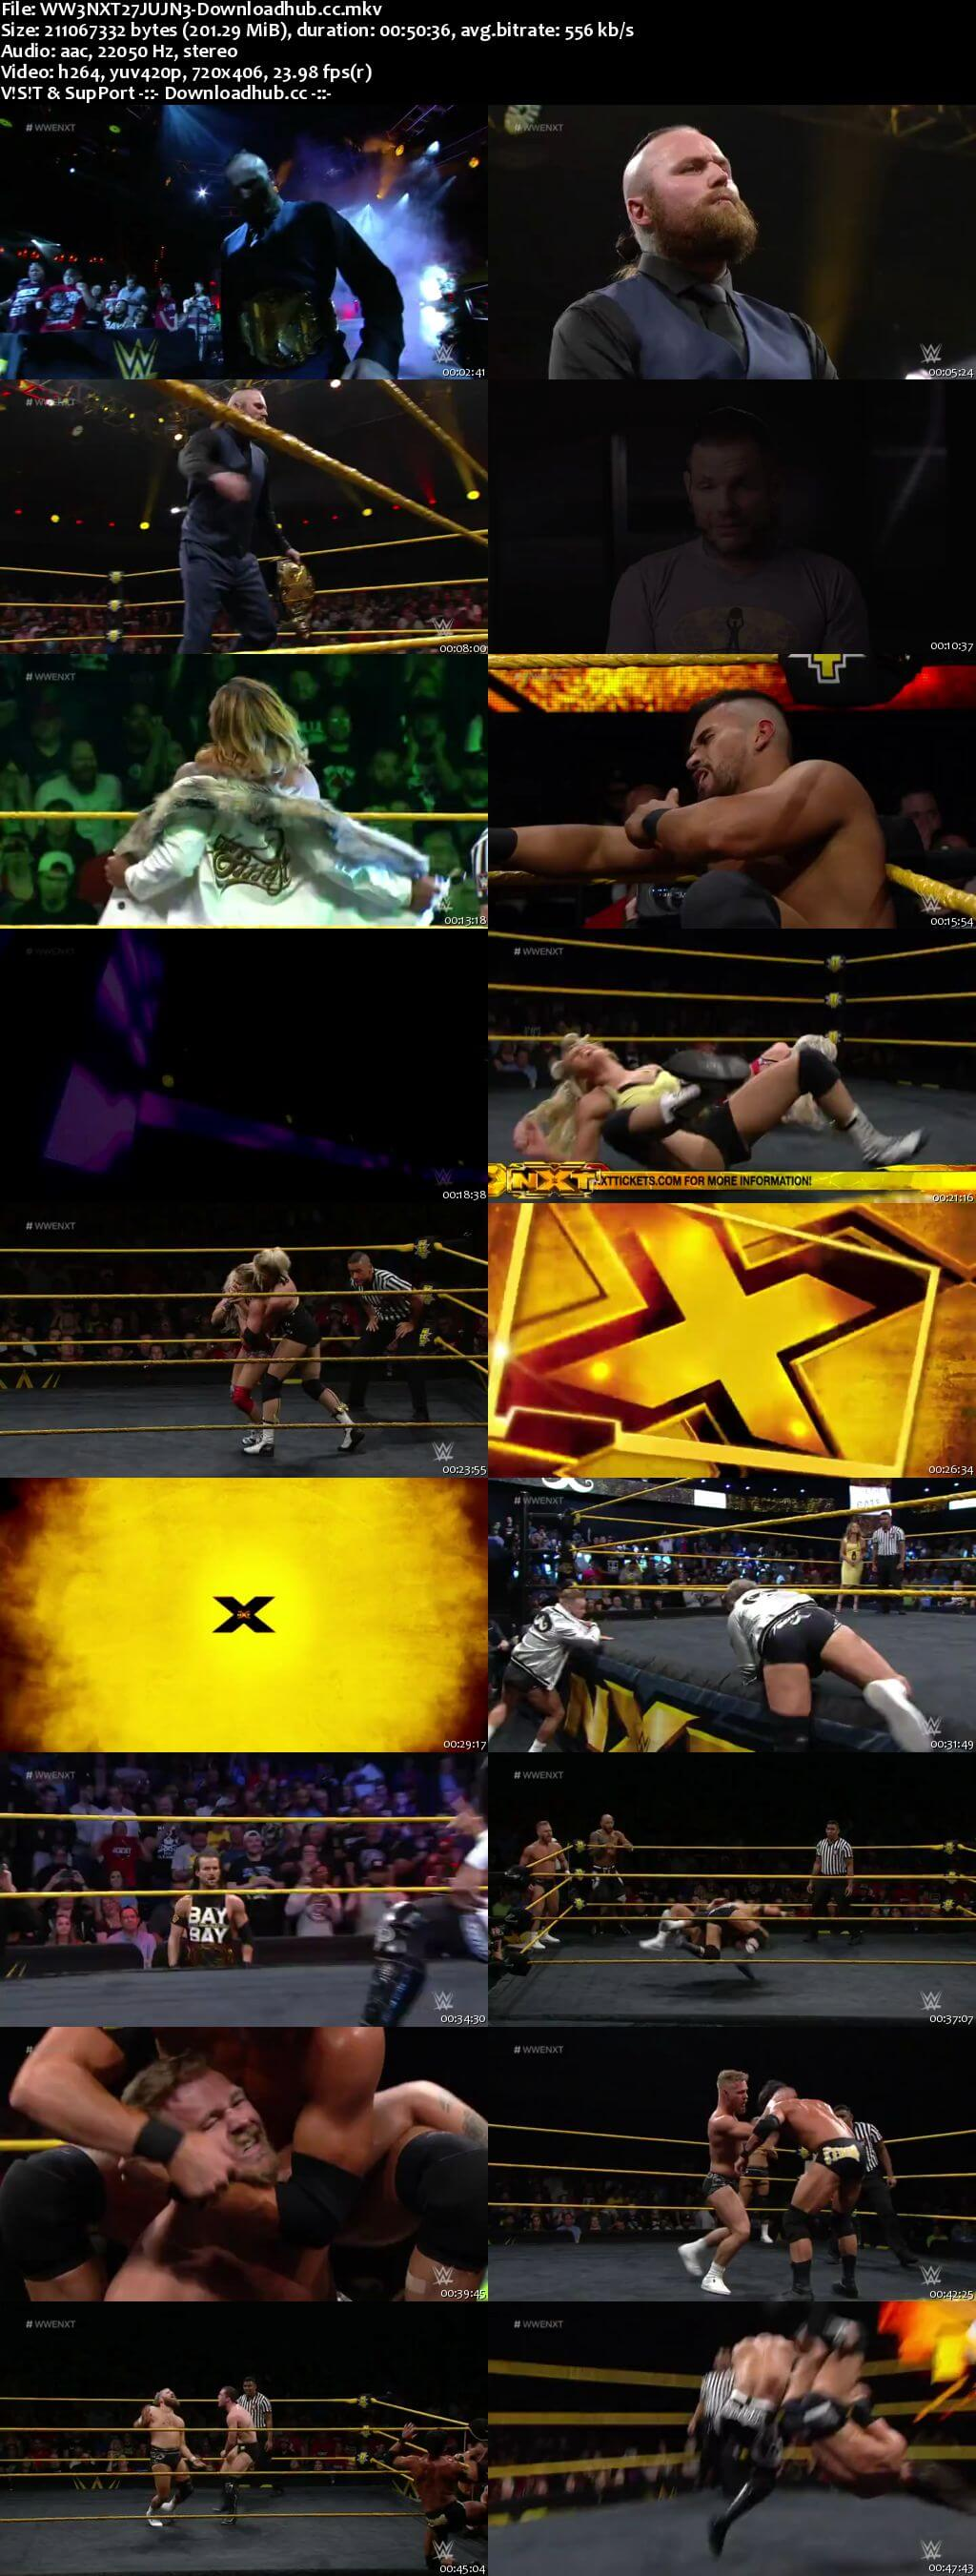 WWE NXT 27 June 2018 480p HDTV Download